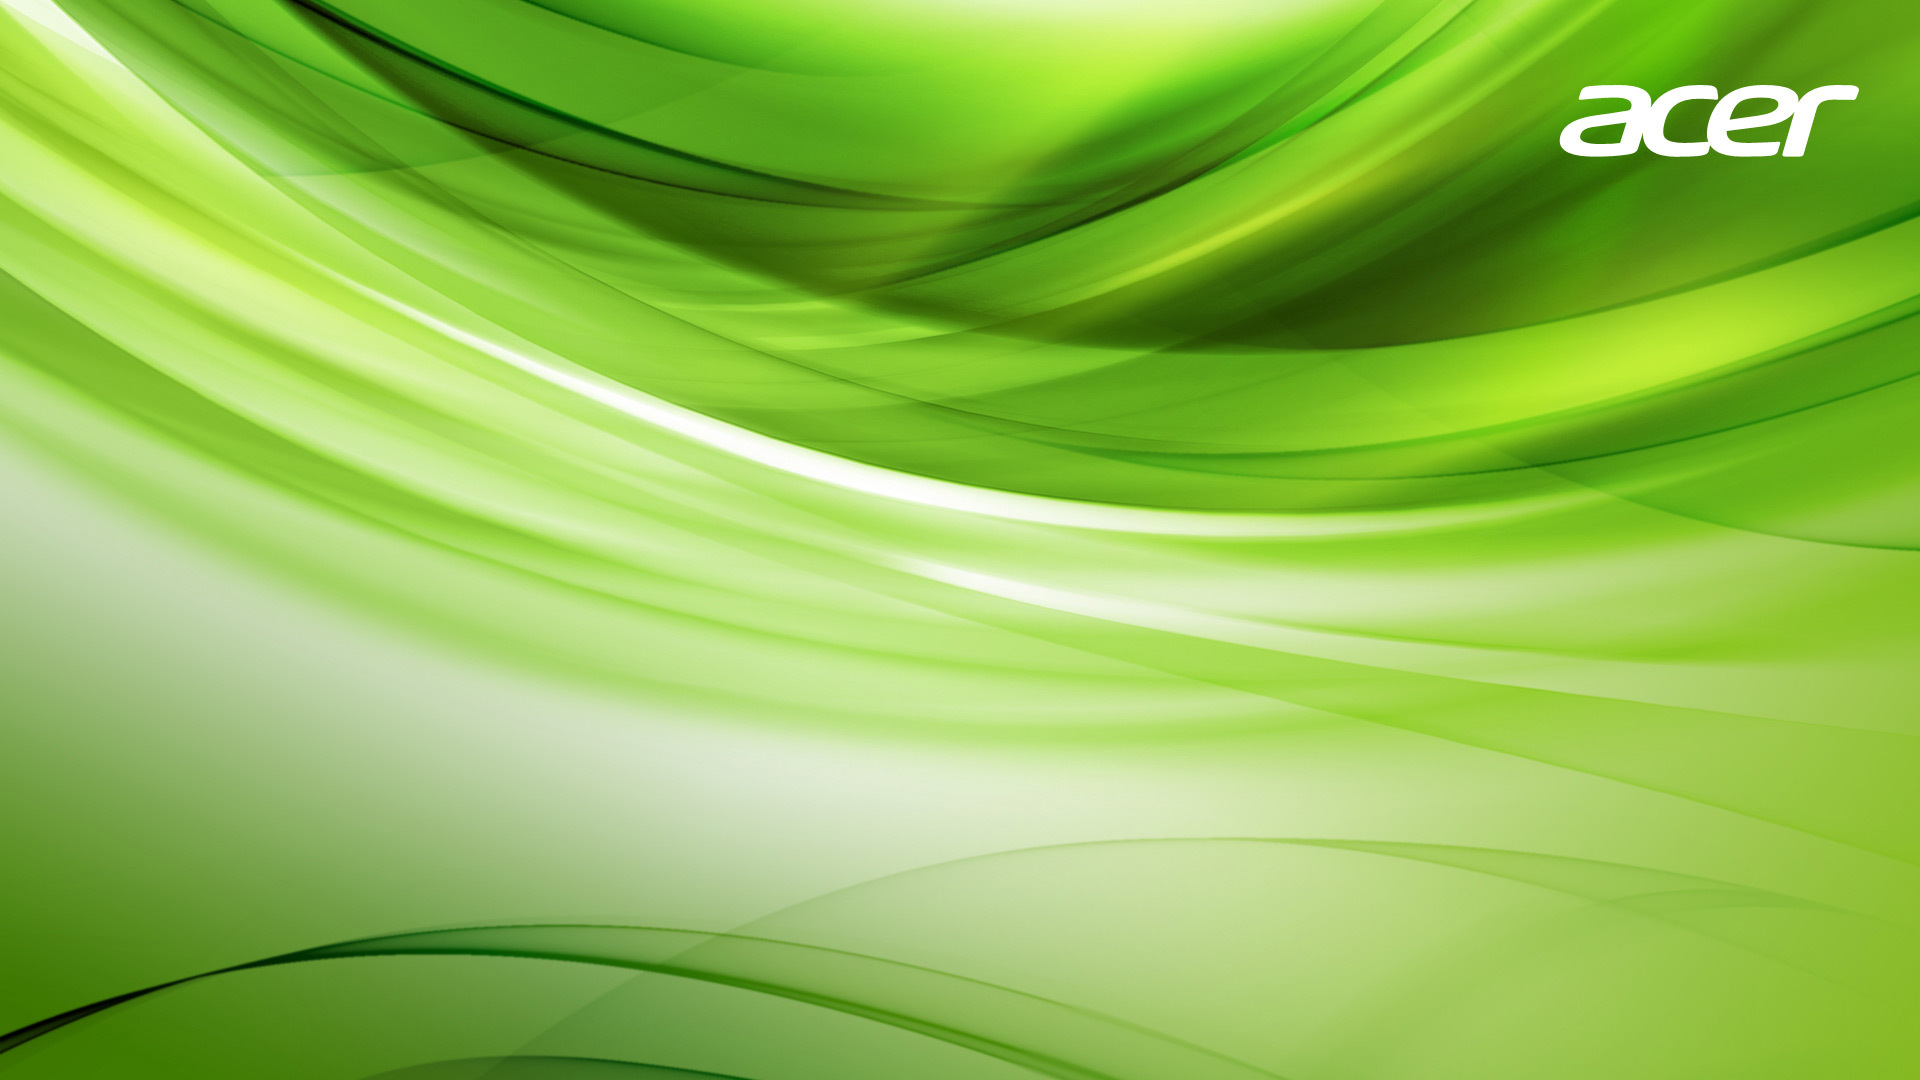 Acer Wallpaper Green HD